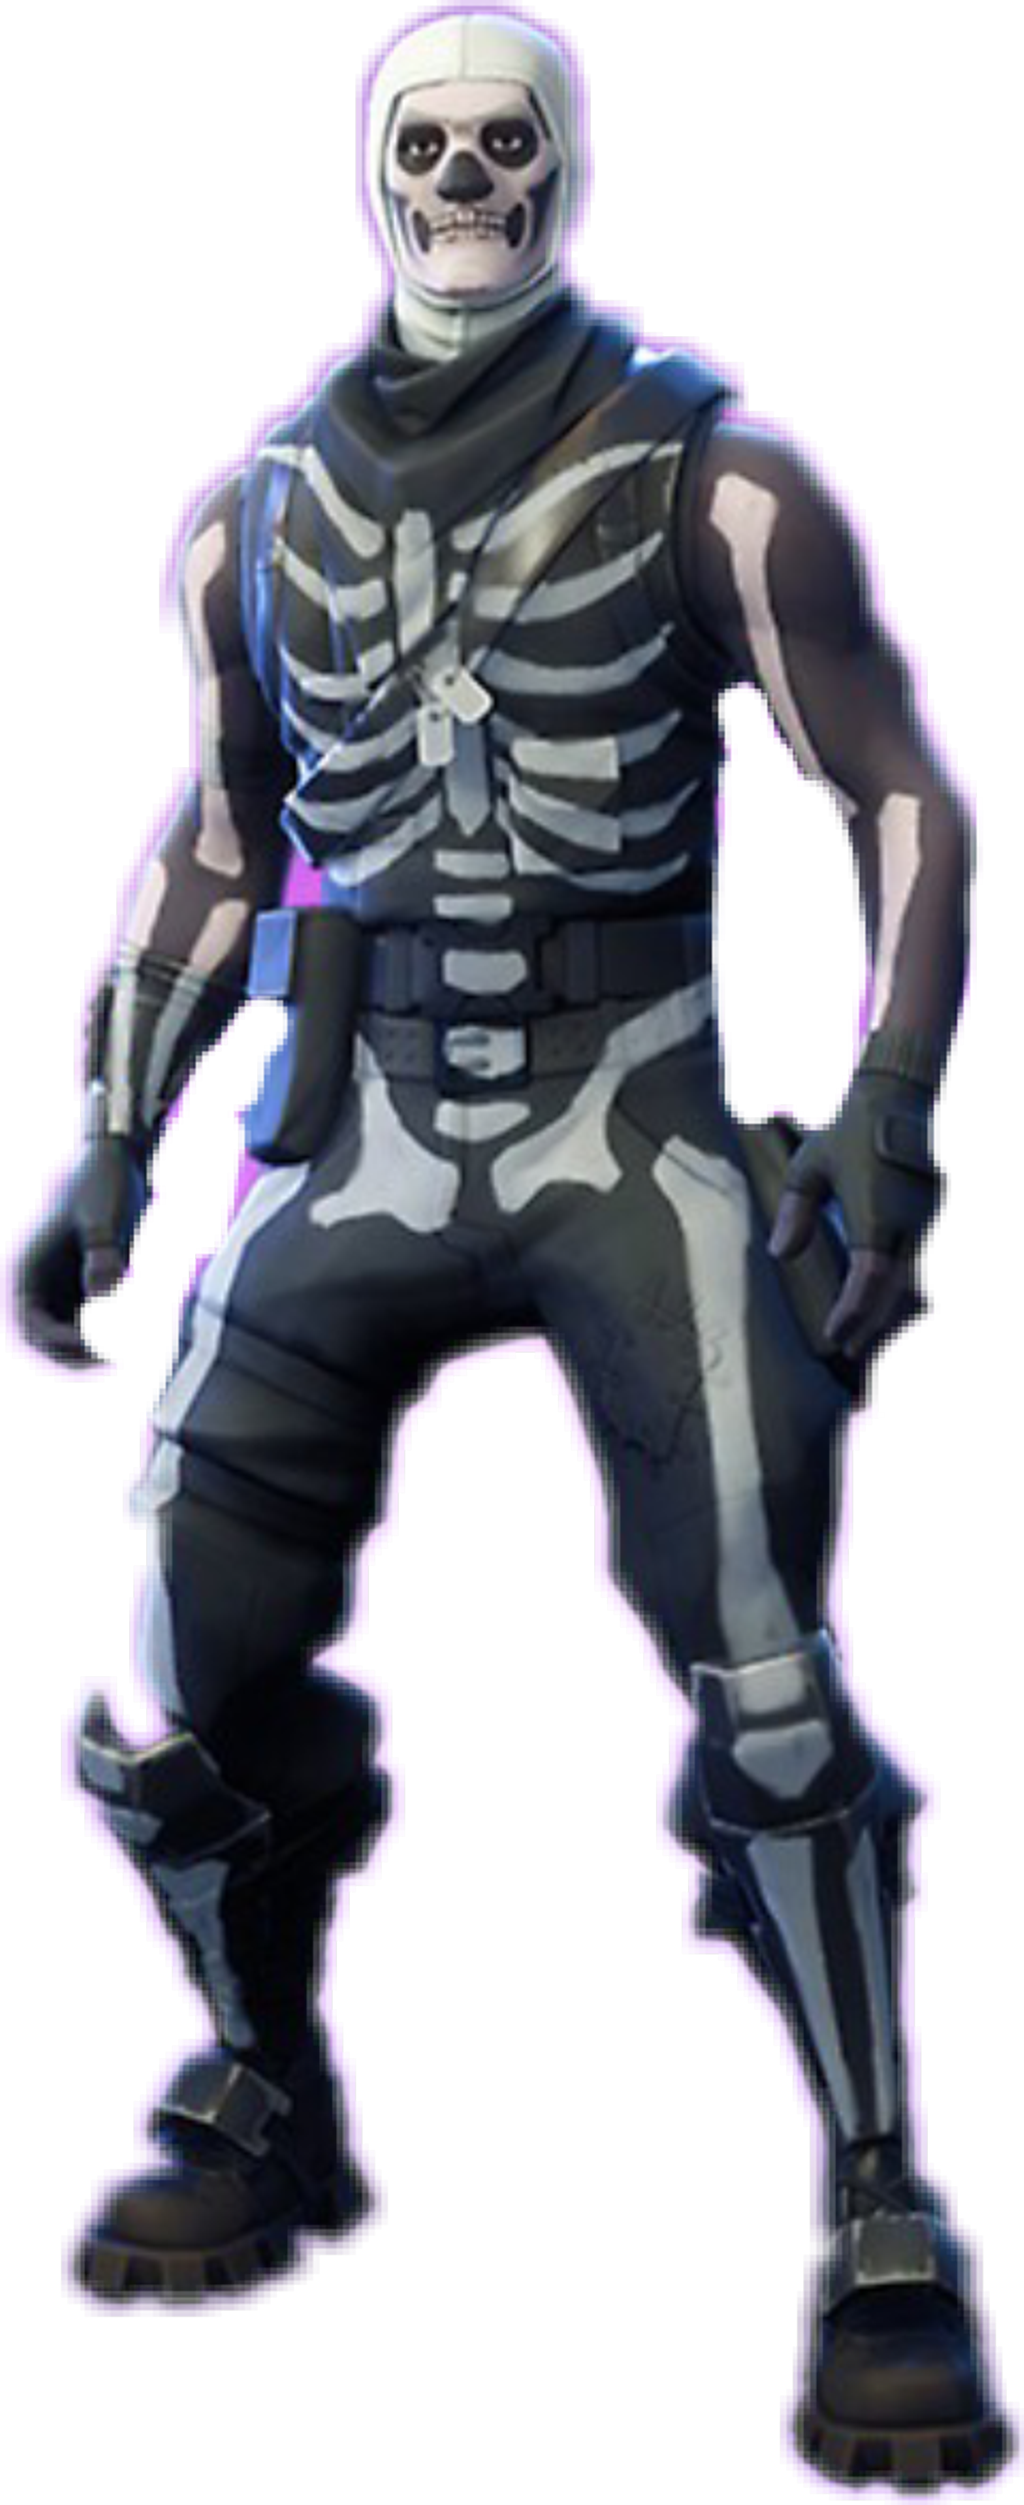 Skull trooper clipart 1080p. Fortnite skin sticker by